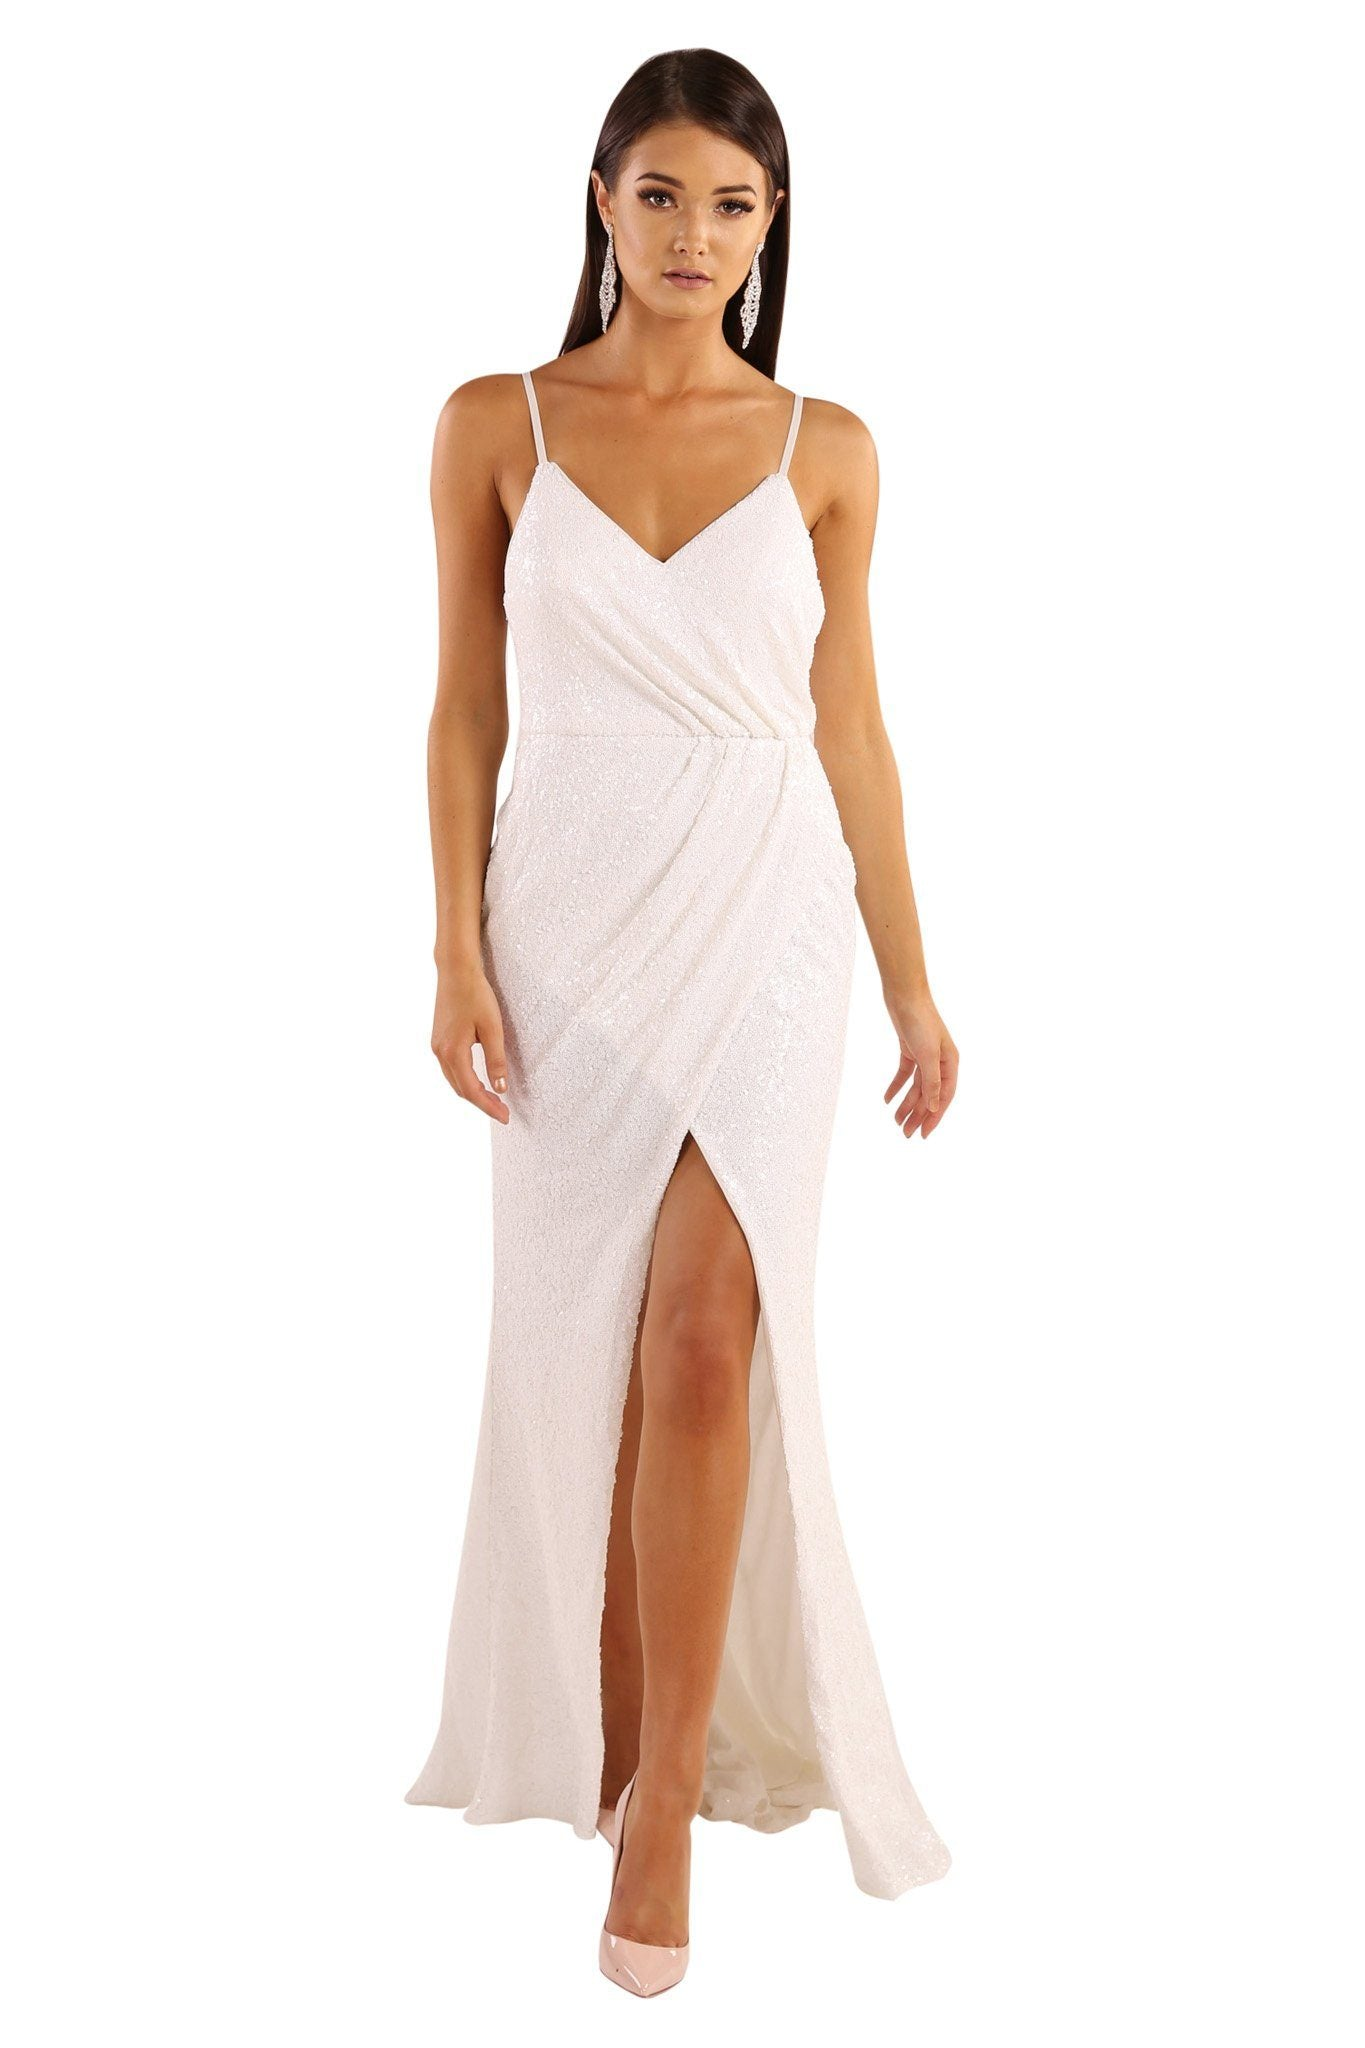 White sleeveless sequin formal long gown with adjustable shoulder straps, front slit and open back design